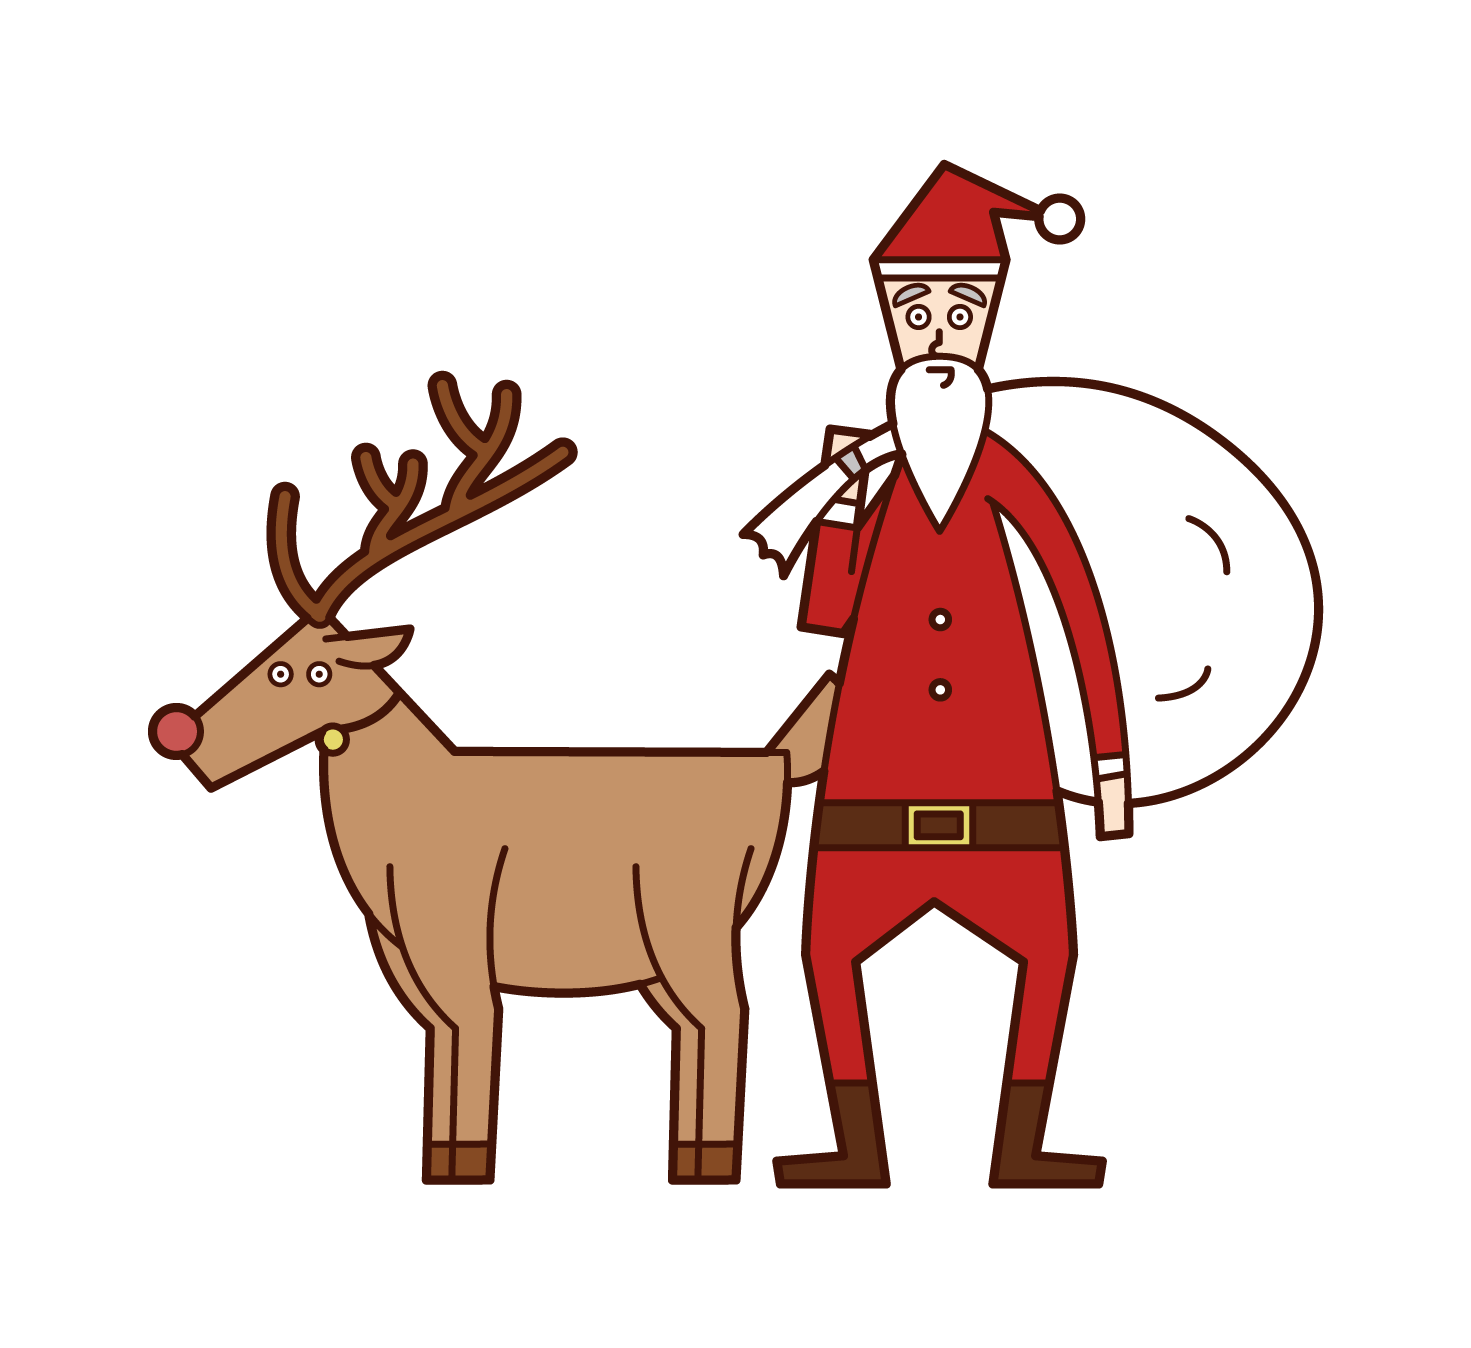 Reindeer and Santa Claus Illustrations